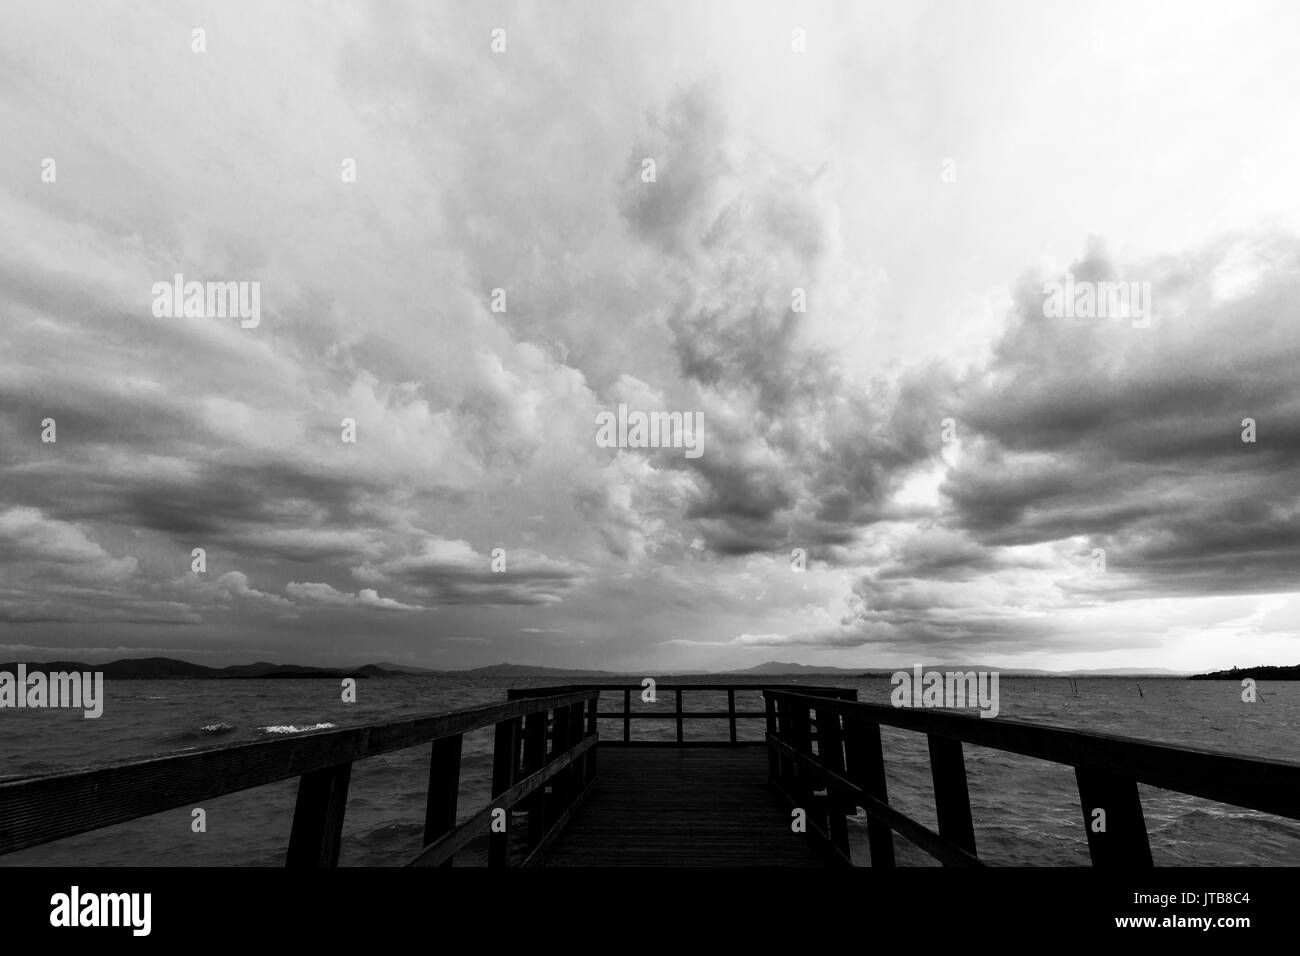 Geometric, first person view of a pier on a lake, beneath an overcast, moody sky - Stock Image